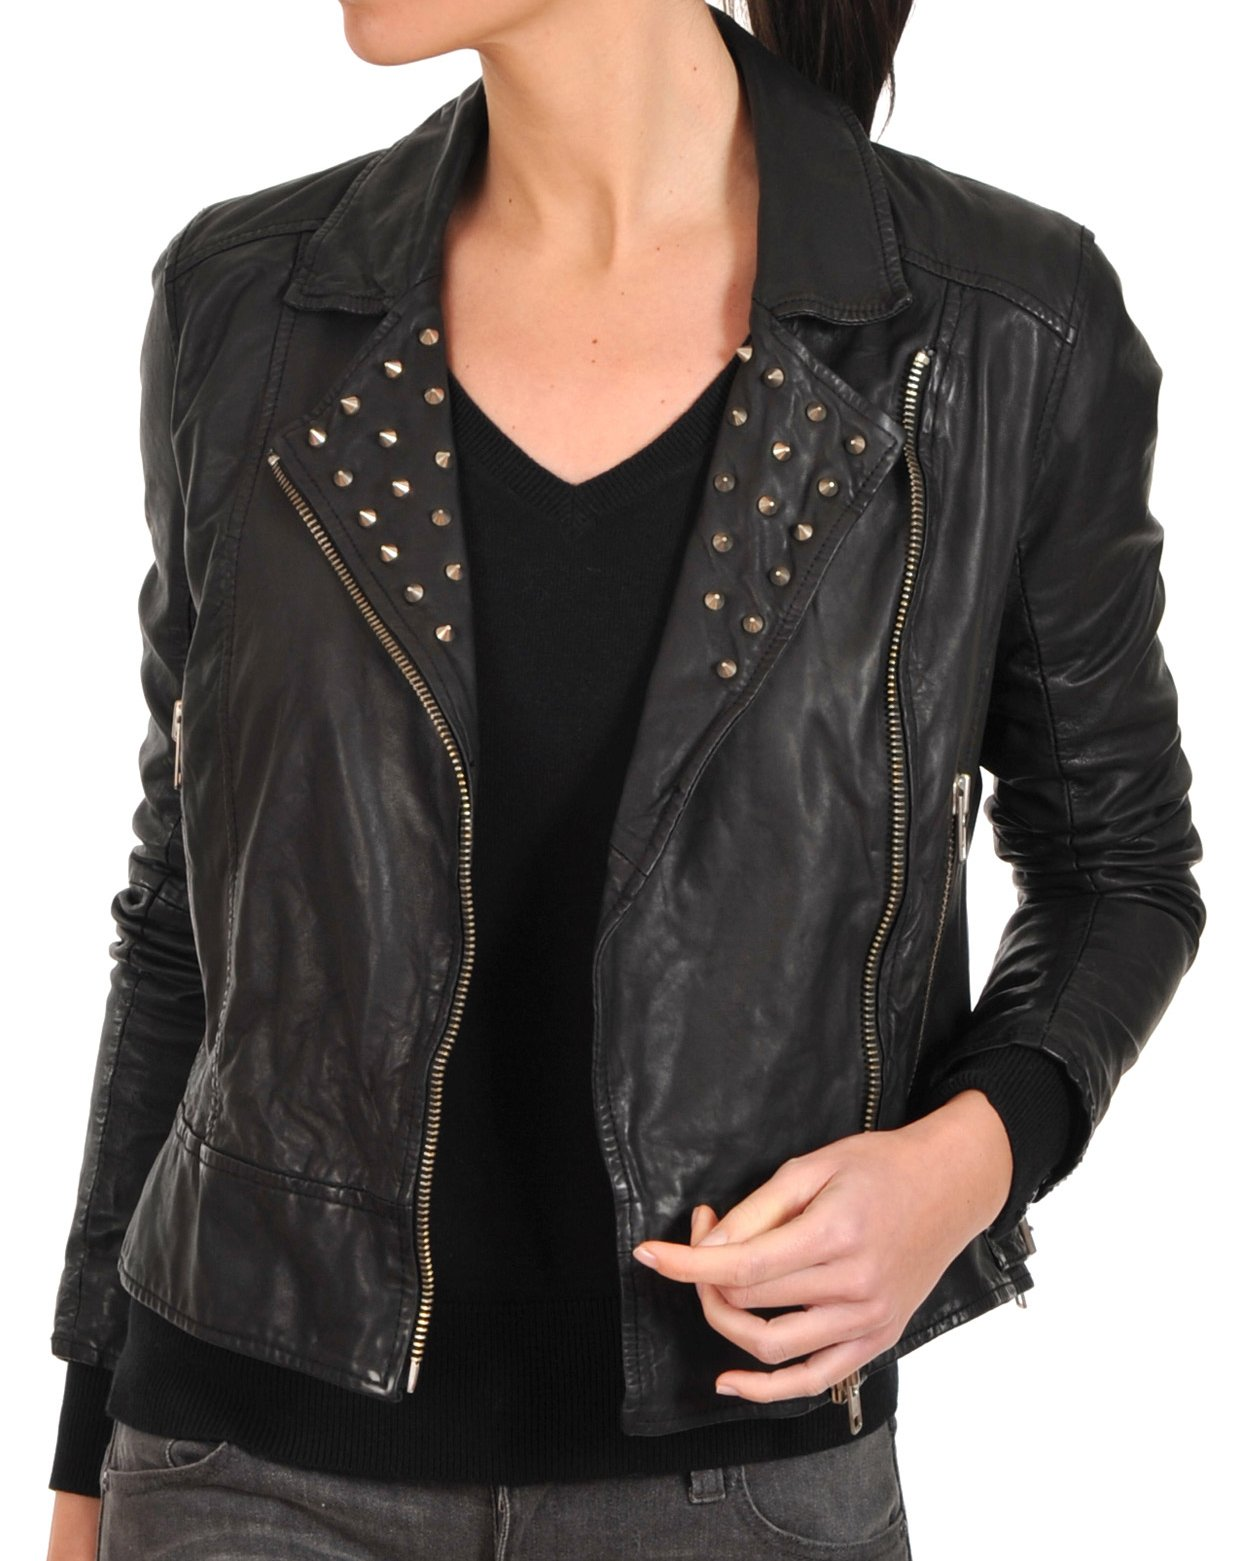 round solomon jacket sb islands mango women woman stud